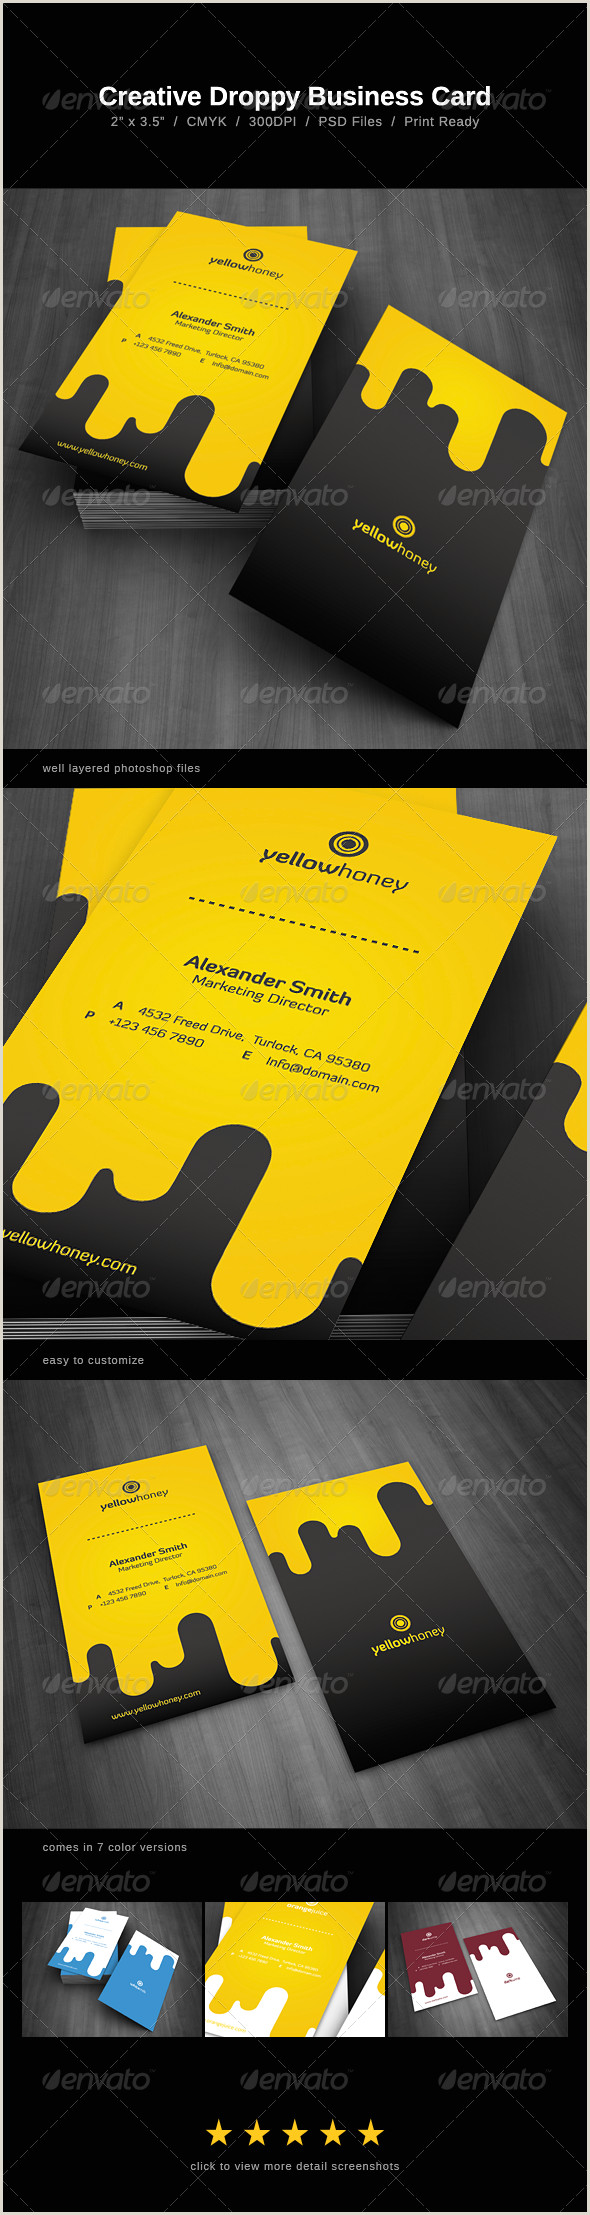 Marketing Business Card Ideas Pin On Flyer Template Layout